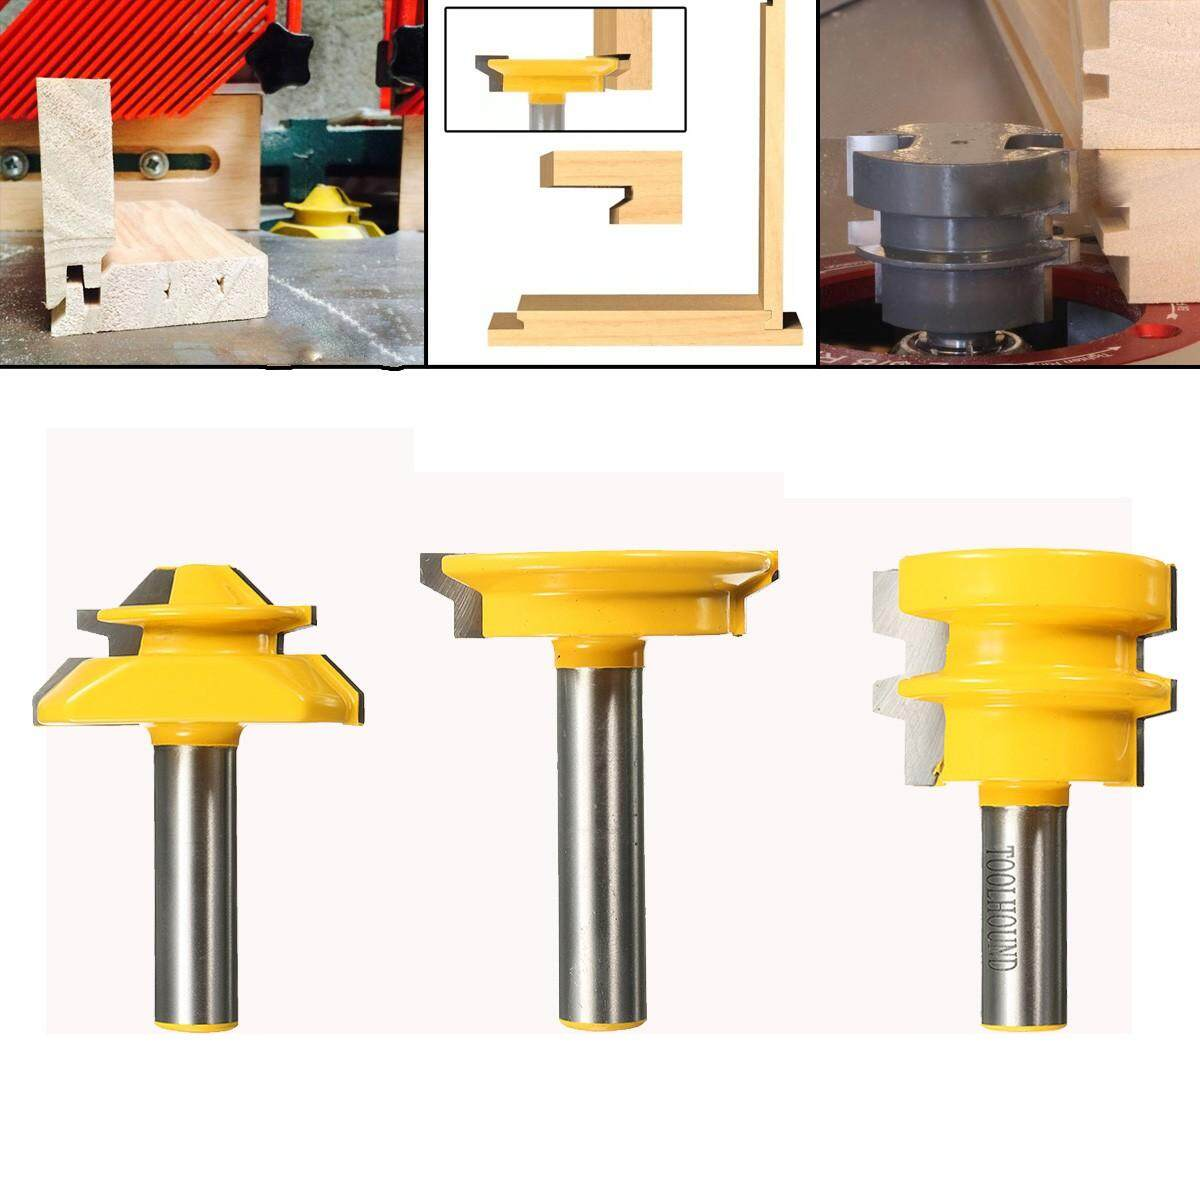 3x 1/2inch Shank Lock Miter Glue Joint Drawer Front Jointing Woodworking Router Bit - intl